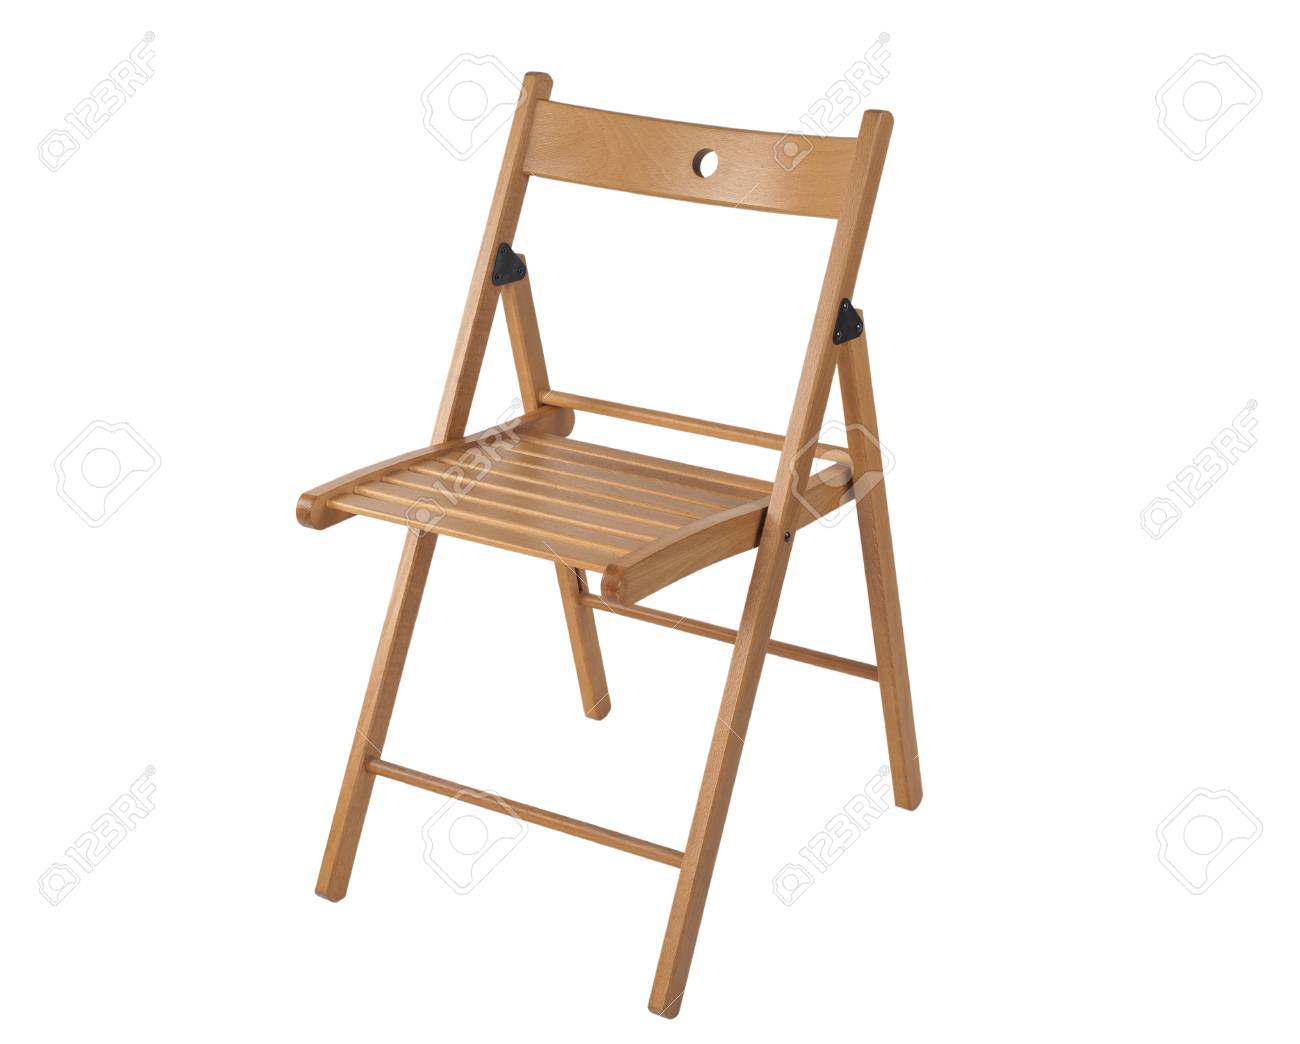 Folding Wooden Chairs Folding Wooden Chair Isolated On White Background